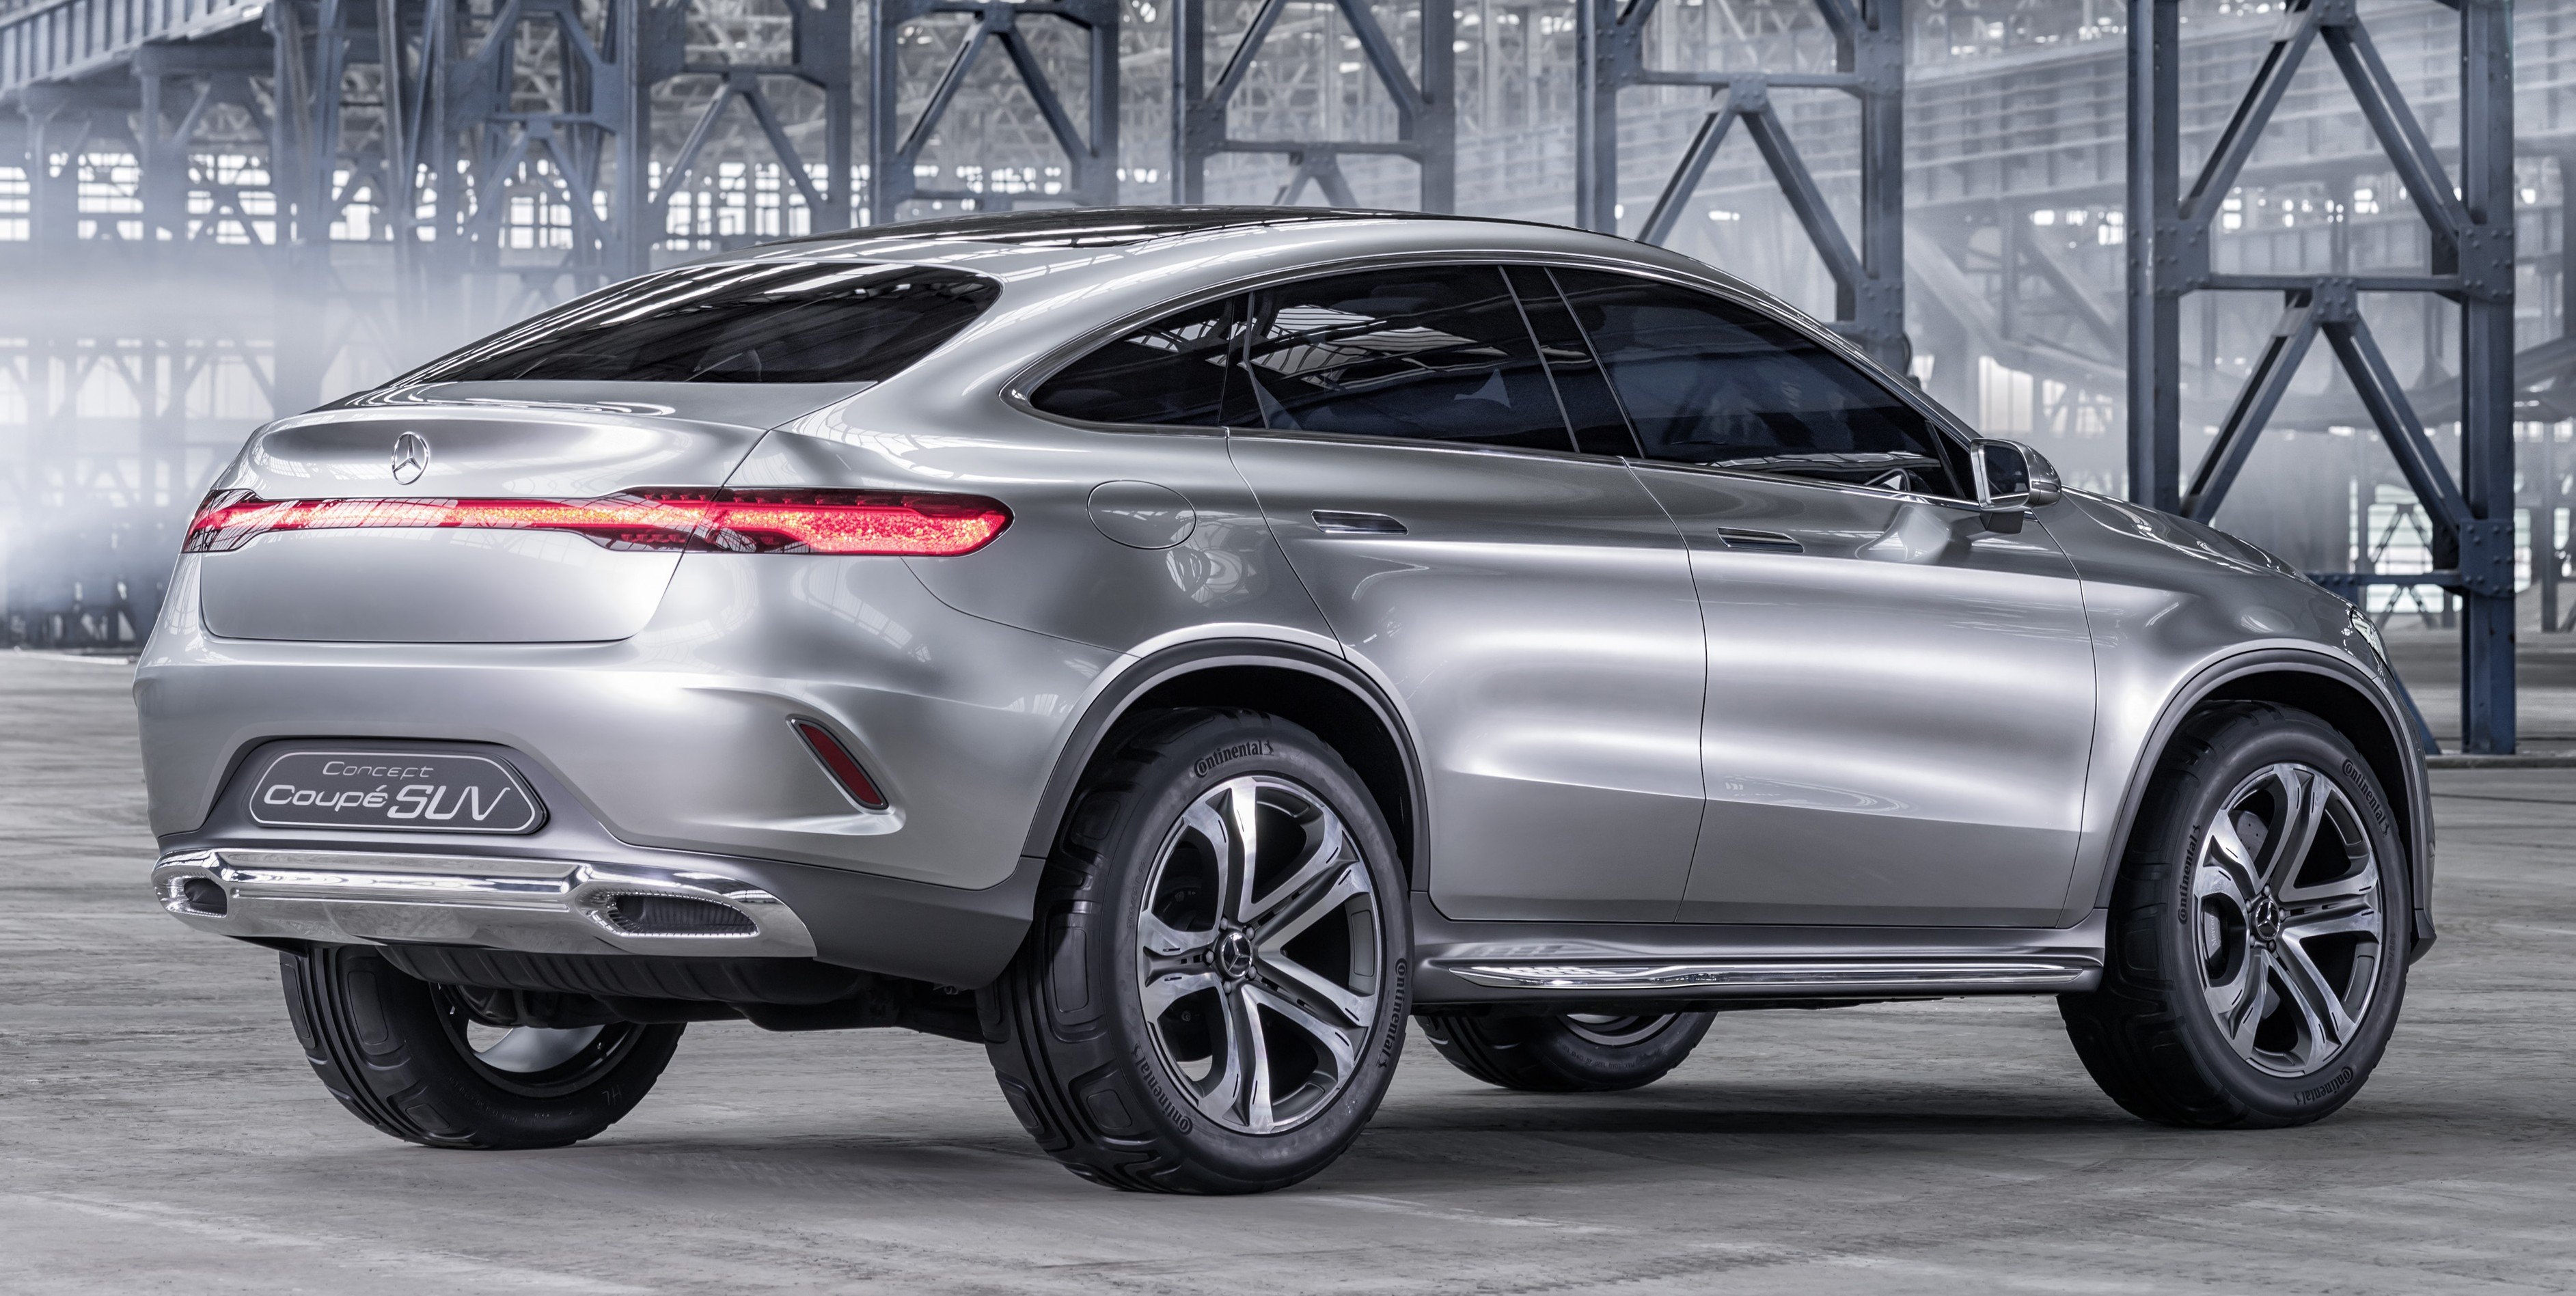 Mercedes-Benz Coupe SUV Concept previews X6 rival Paul Tan ...